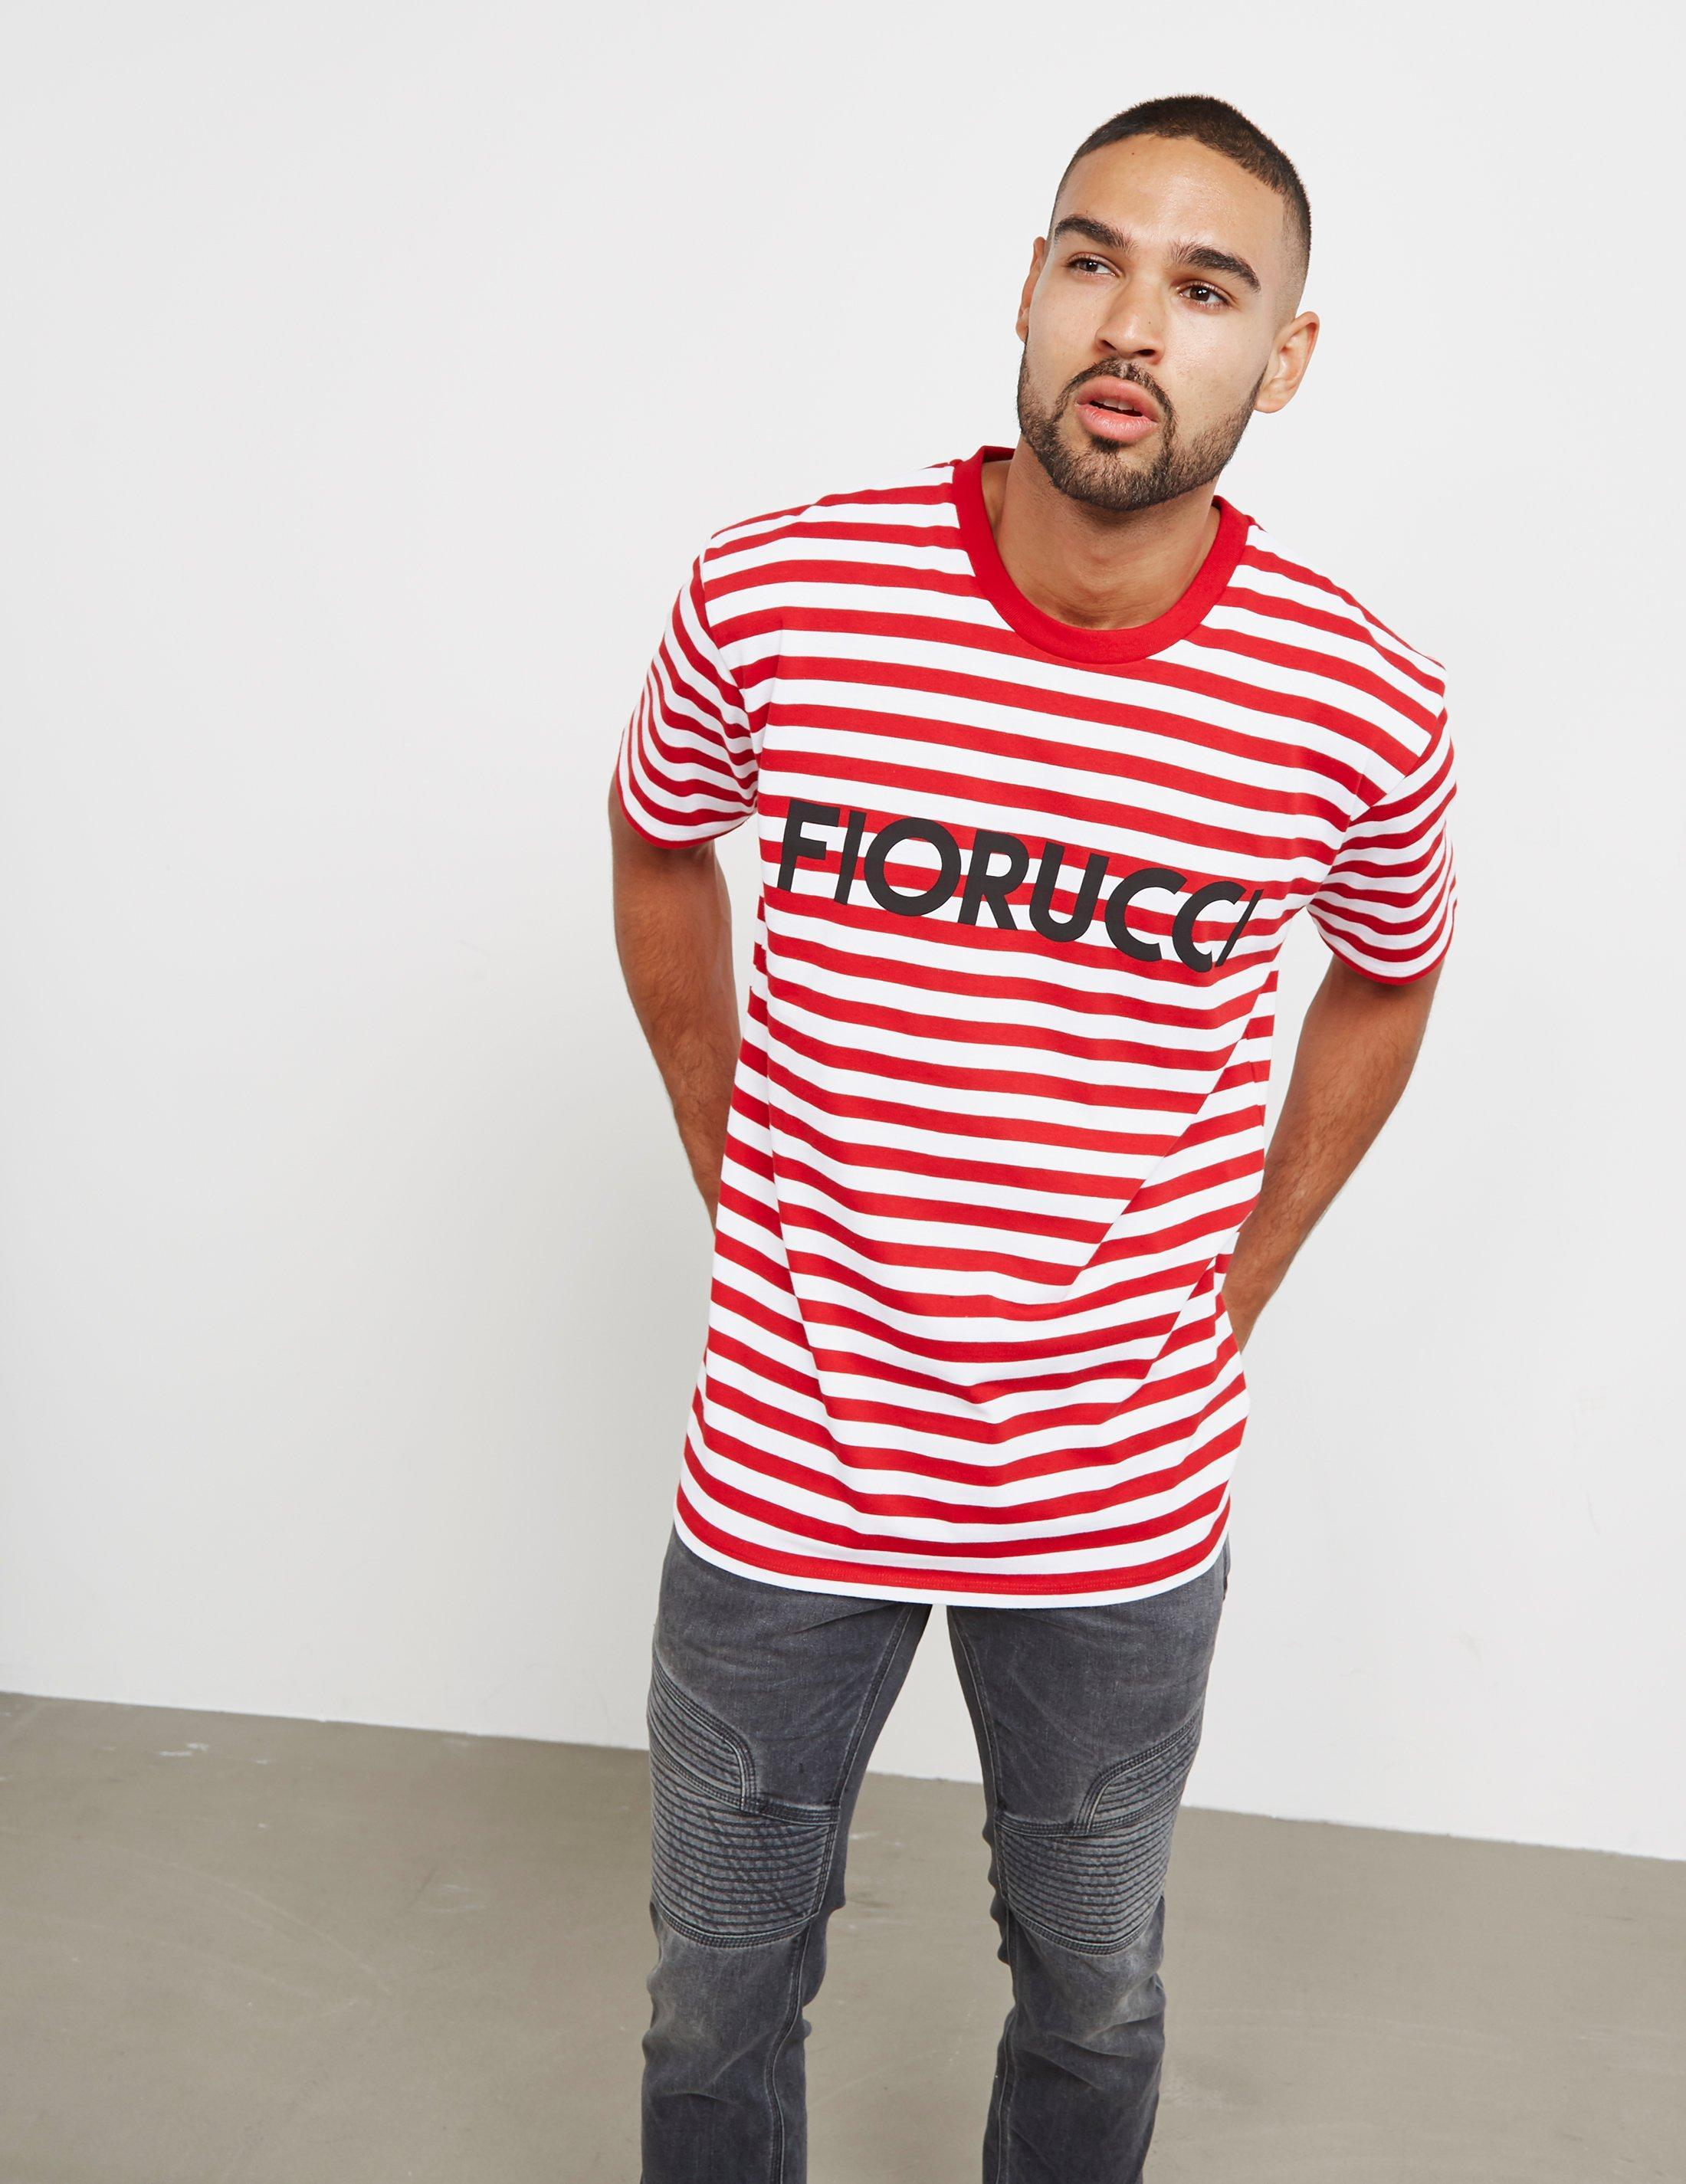 b412c476e89 Fiorucci Stripe Short Sleeve T-shirt Red in Red for Men - Save 51% - Lyst